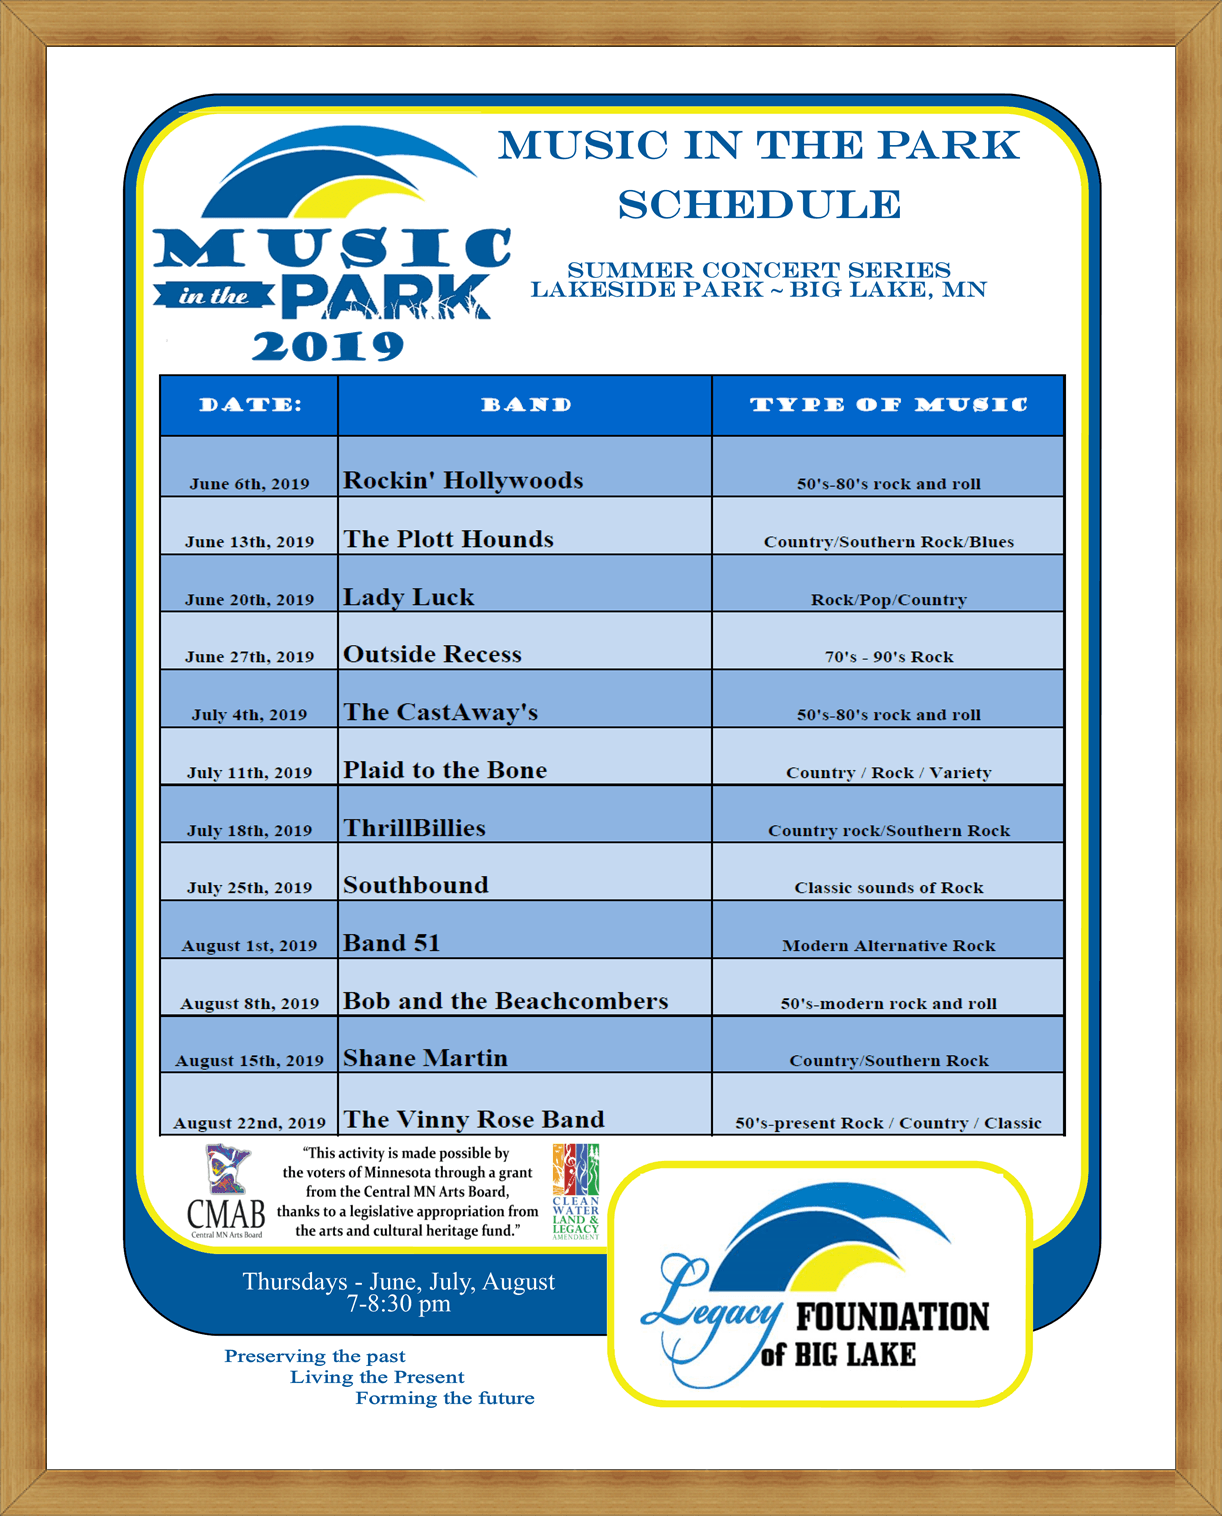 Music in the Park 2019